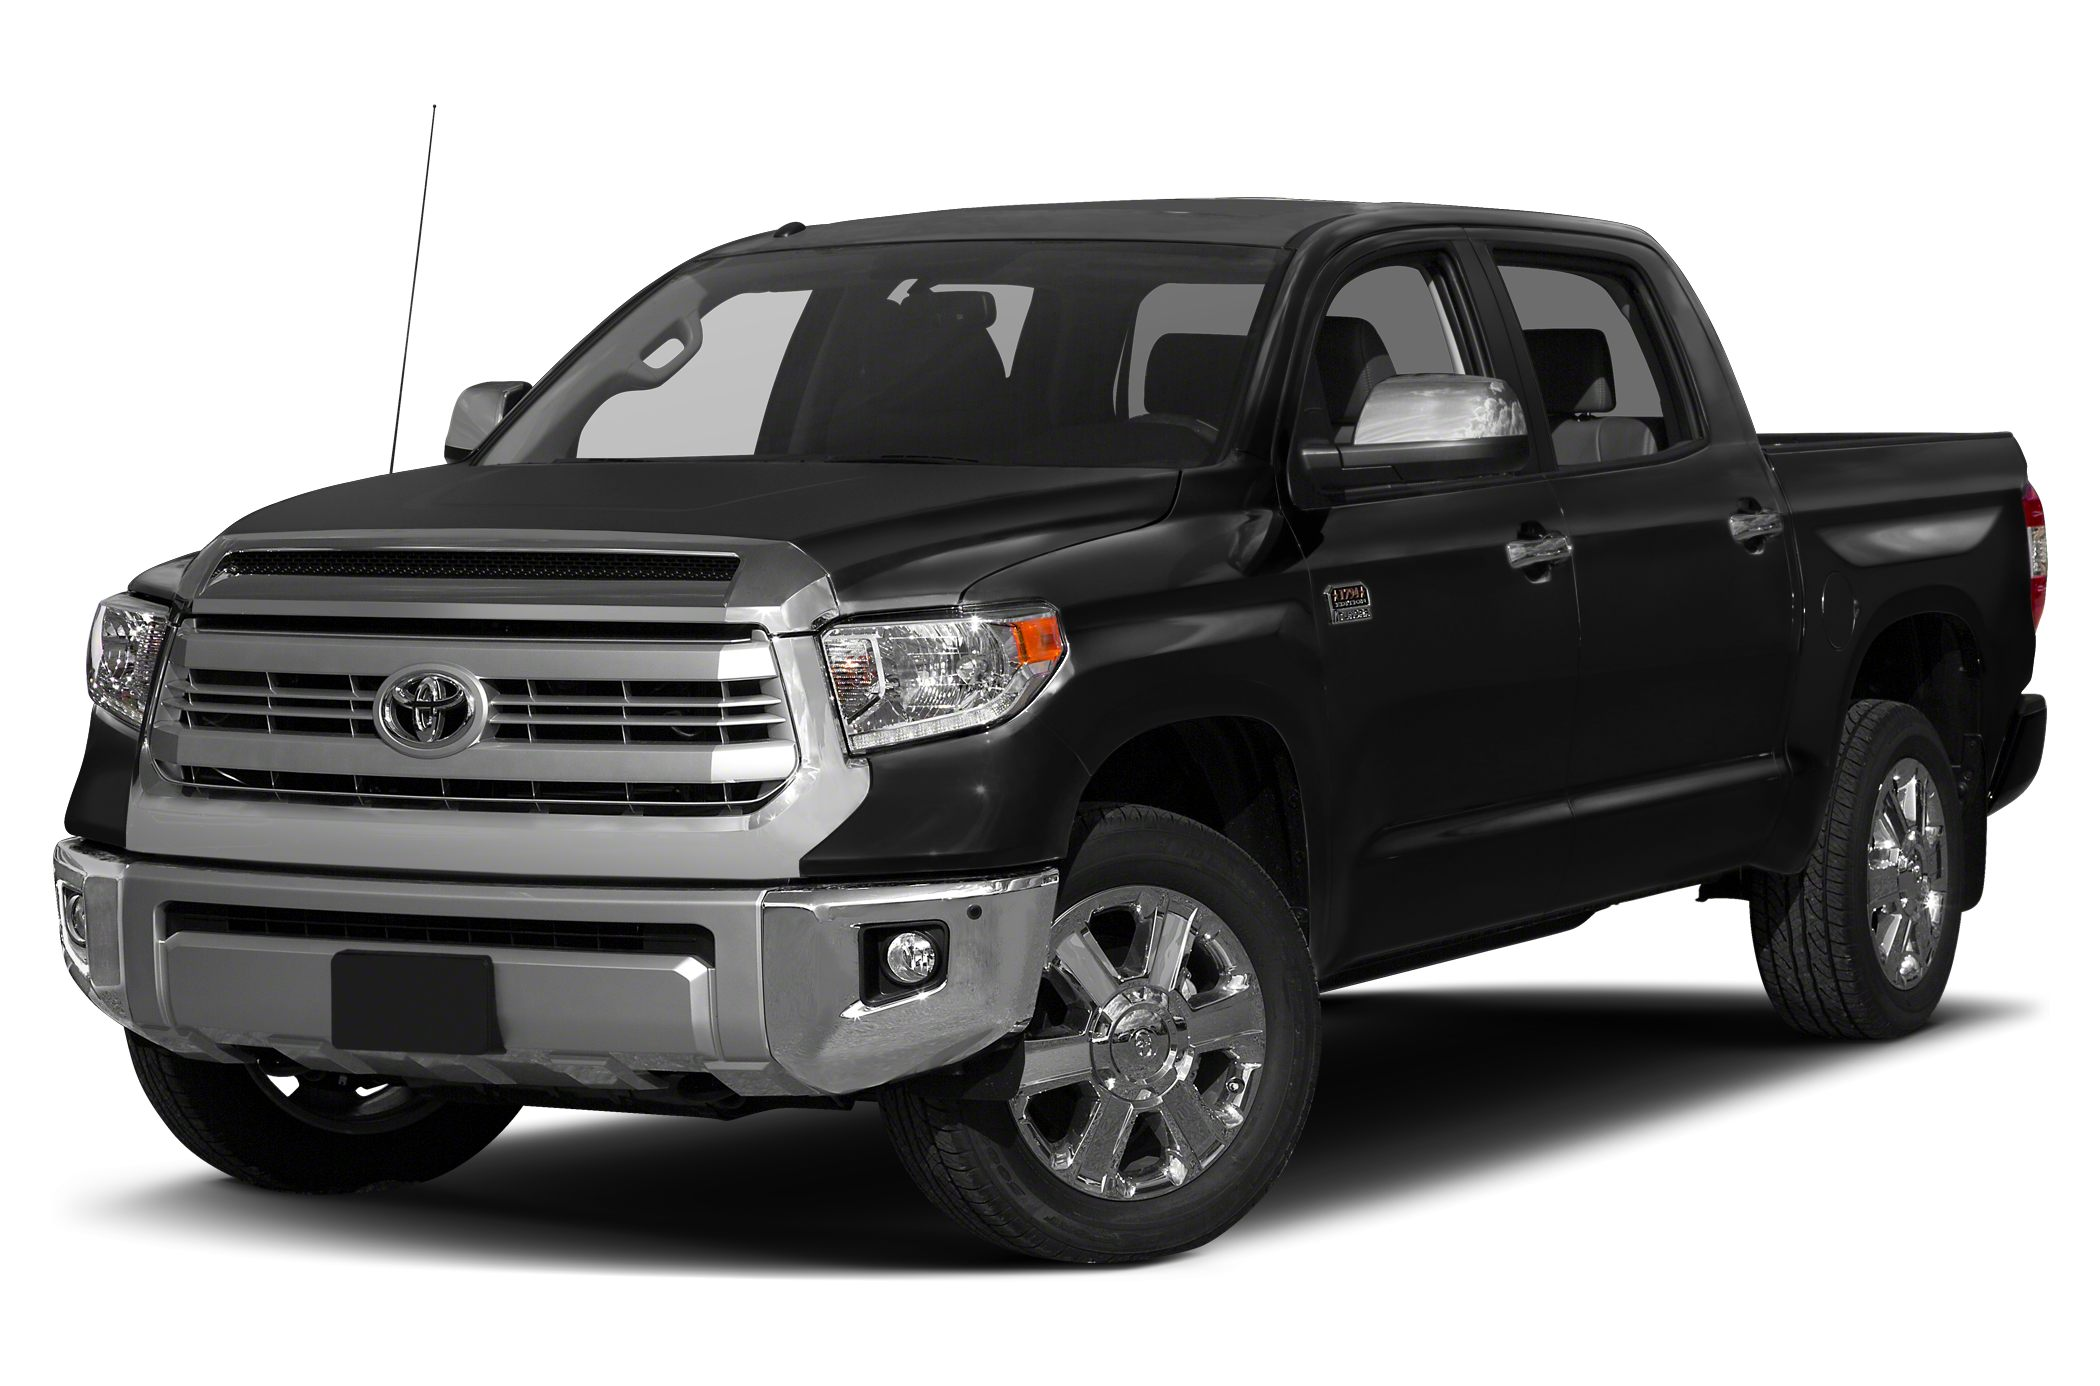 2014 Toyota Tundra 1794 Crew Cab Pickup for sale in Columbus for $46,494 with 28,229 miles